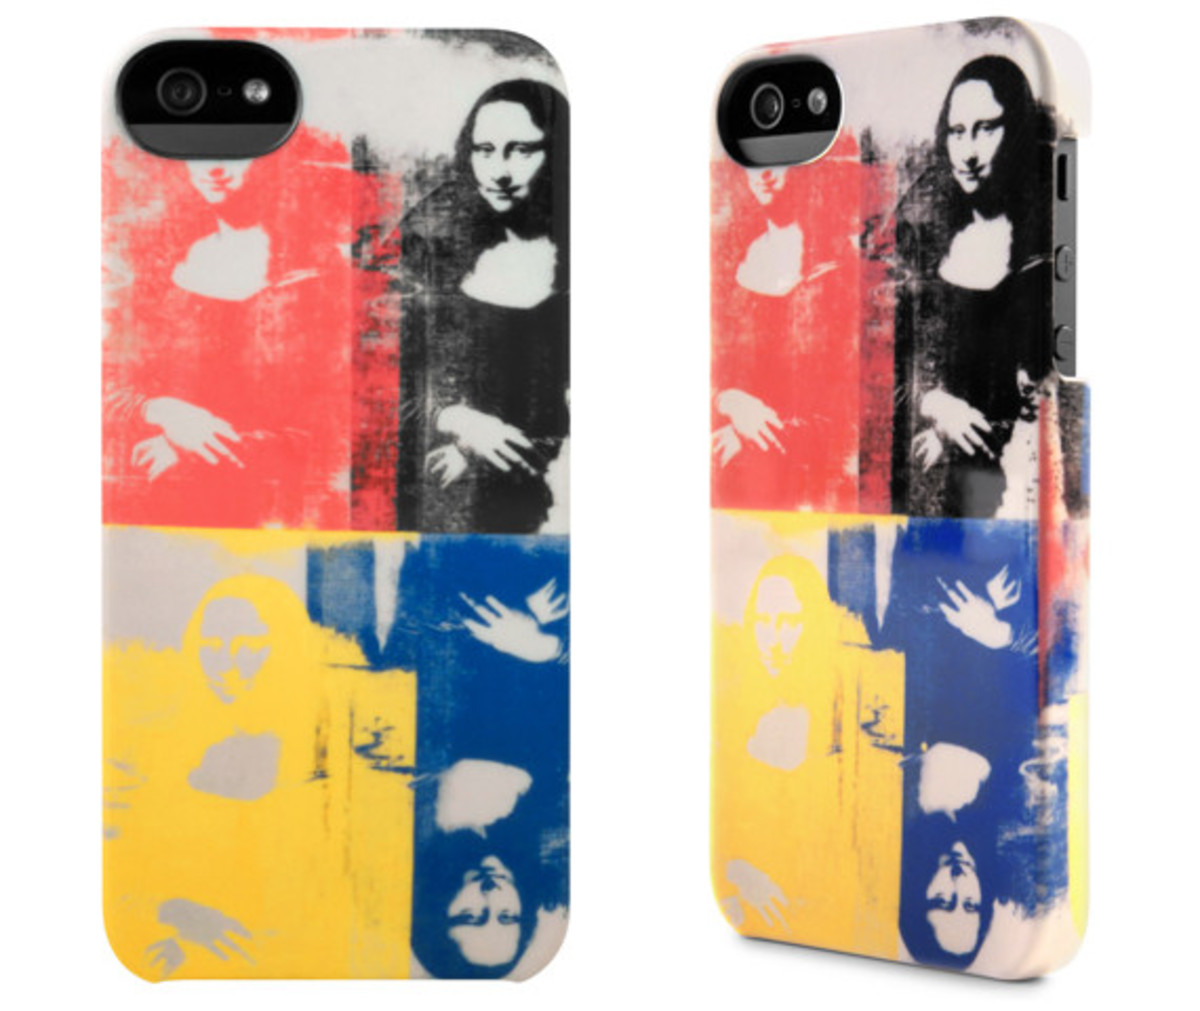 incase-for-andy-warhol-collection-iphone-5-cases-02